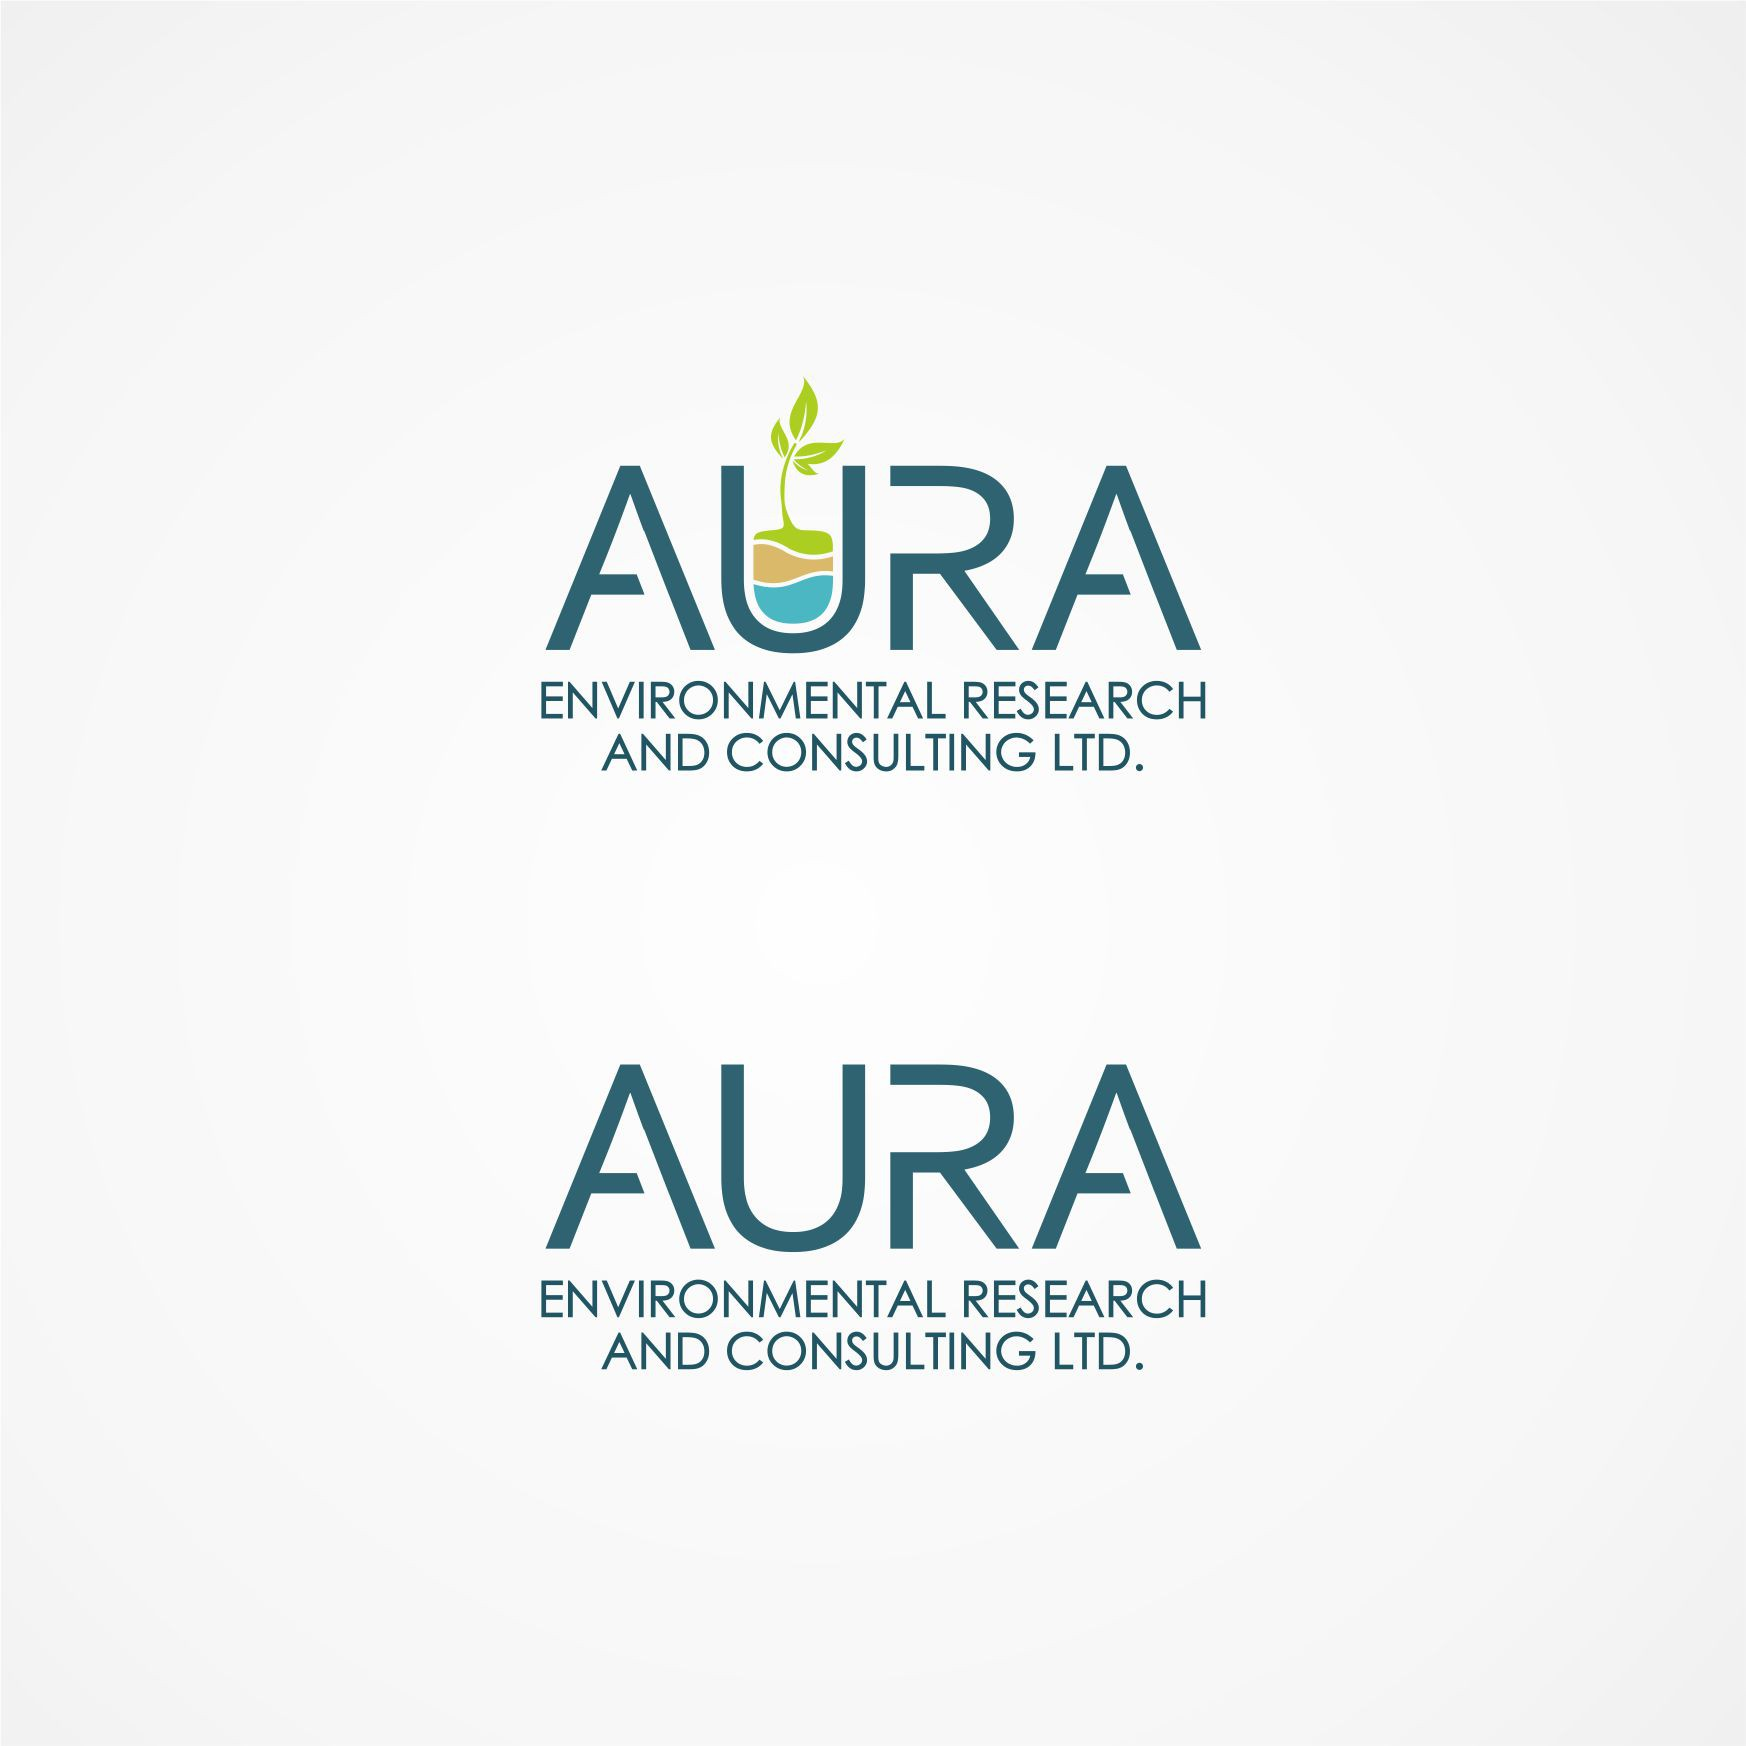 Value added environmental consulting firm seeks new logo.